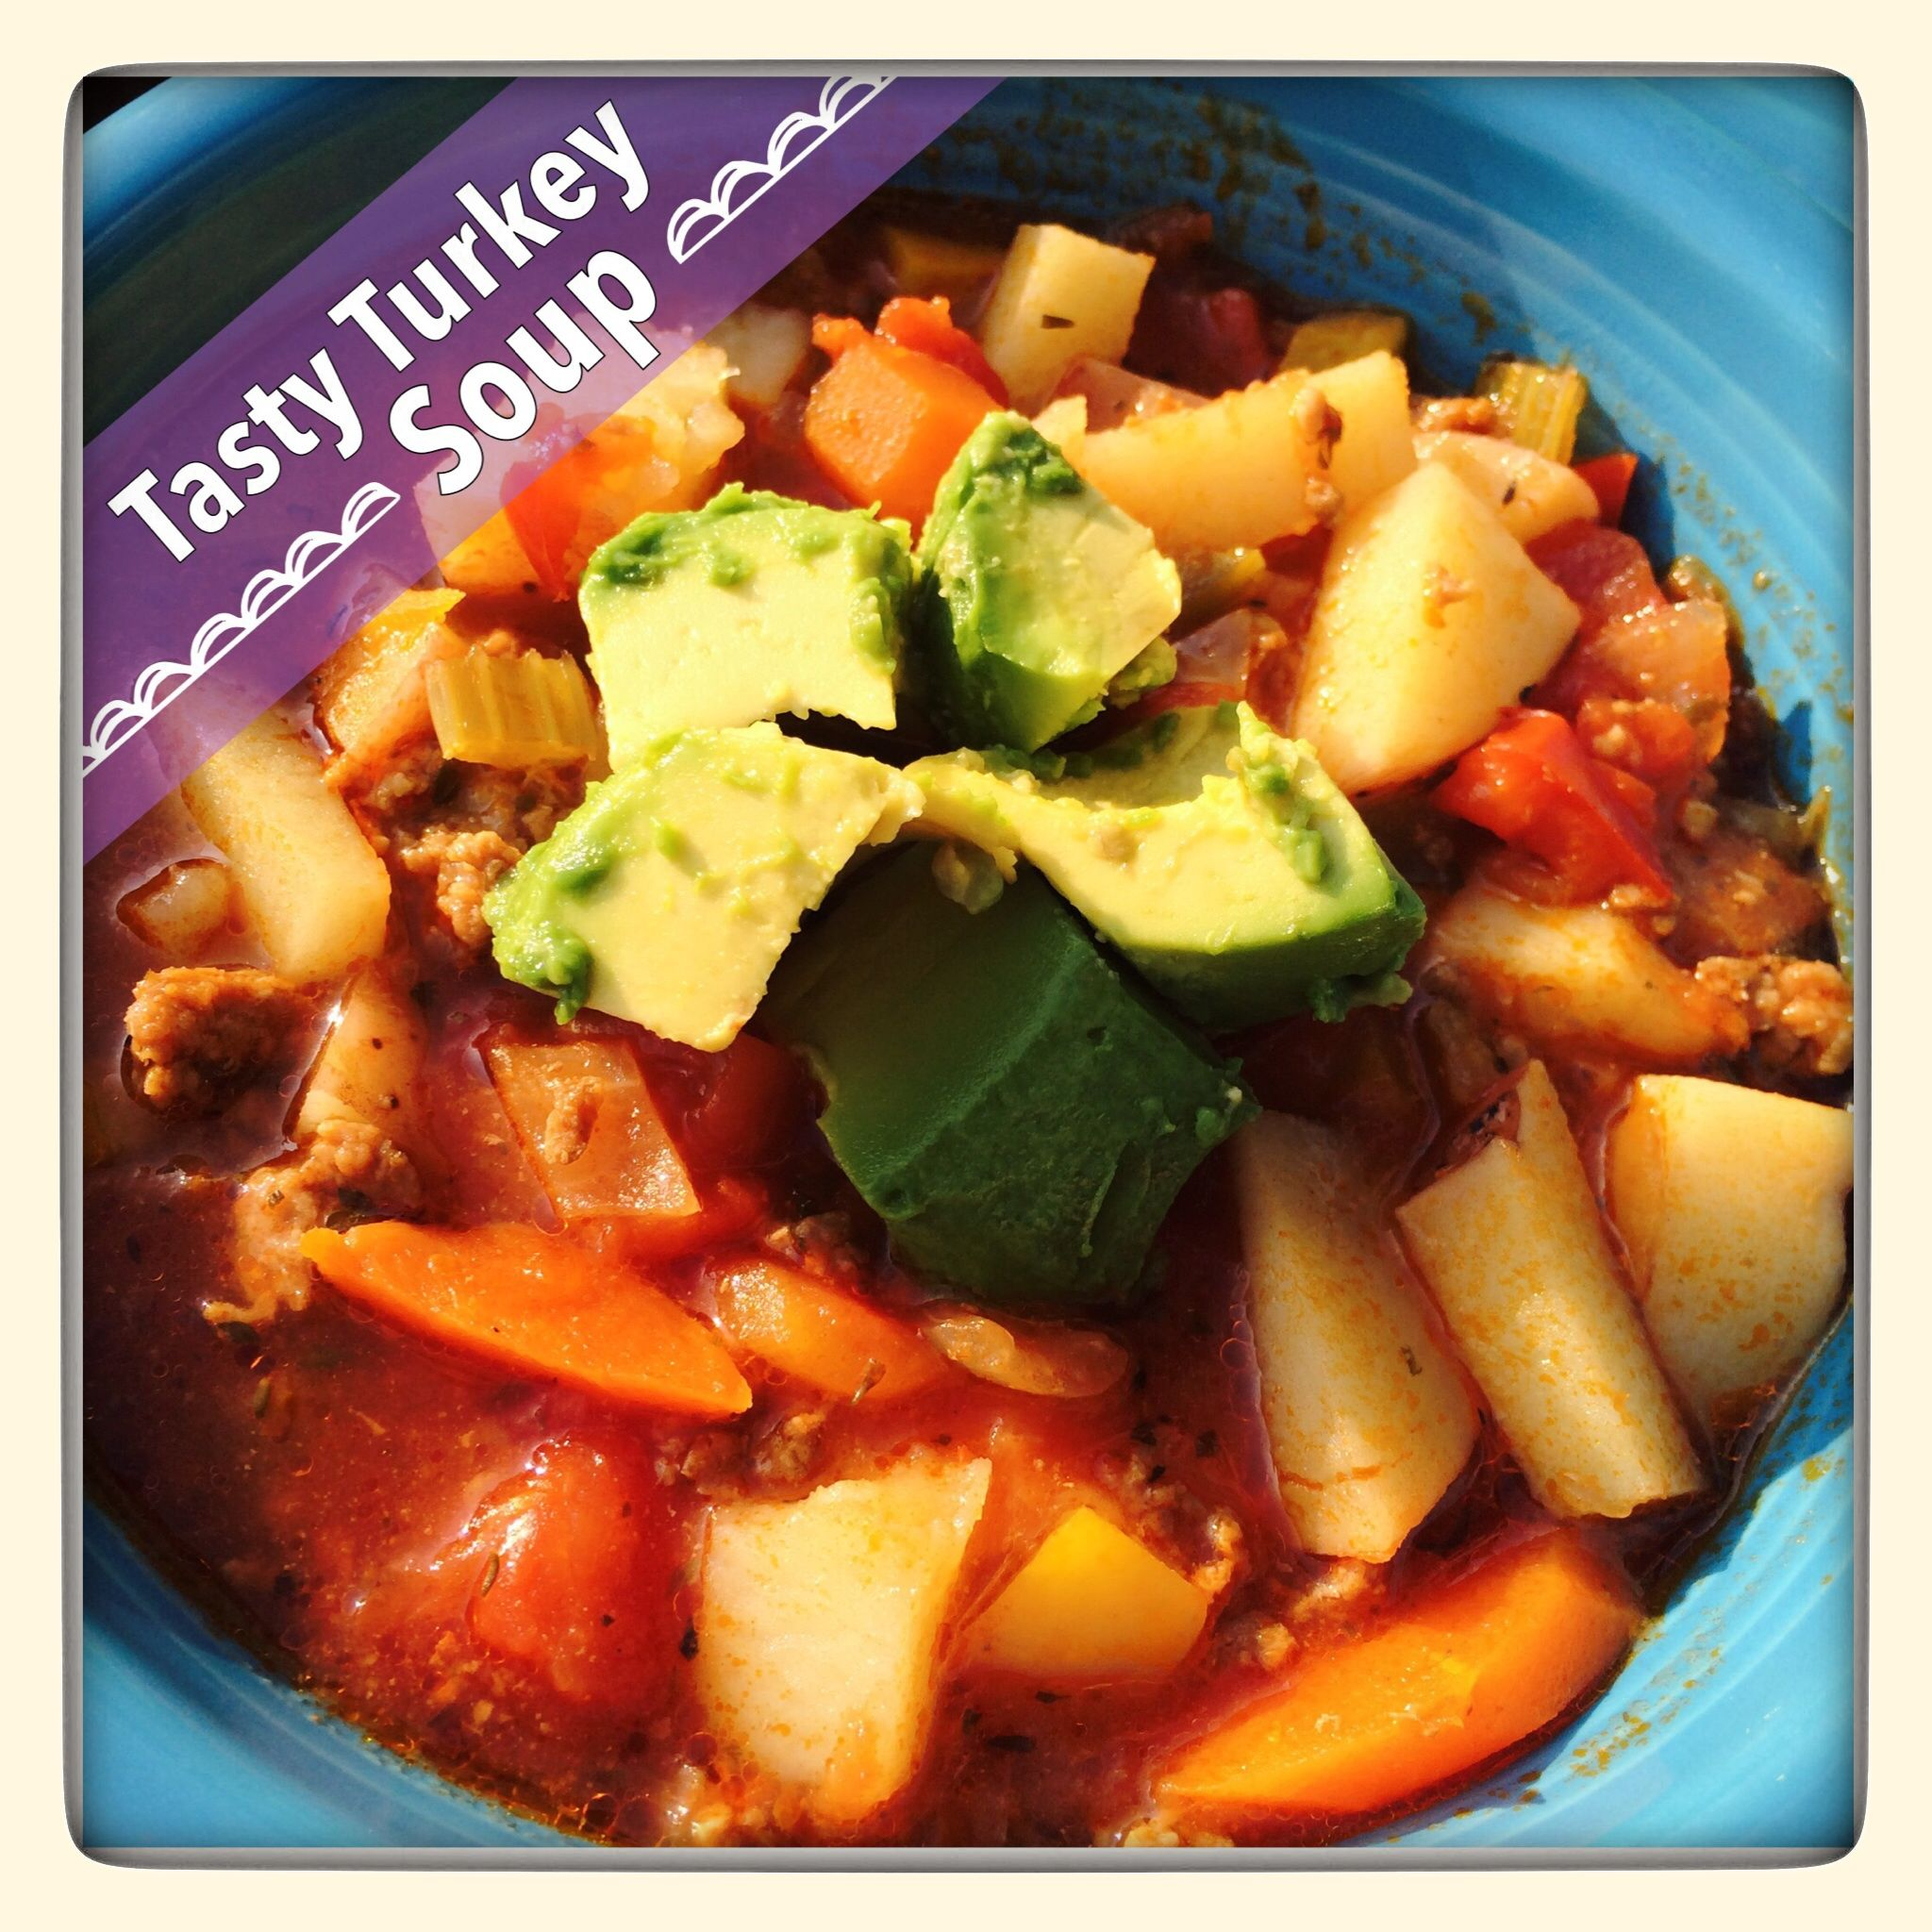 This Turkey Soup was a huge hit with my family. I'd say it's a cross between a hearty chilli or a hamburger stew. The beauty of this recipe is that you can add or omit any veggies you choose. By the way, I think zuchinni, corn, or even mushrooms would be nice additions next time I make this soup.